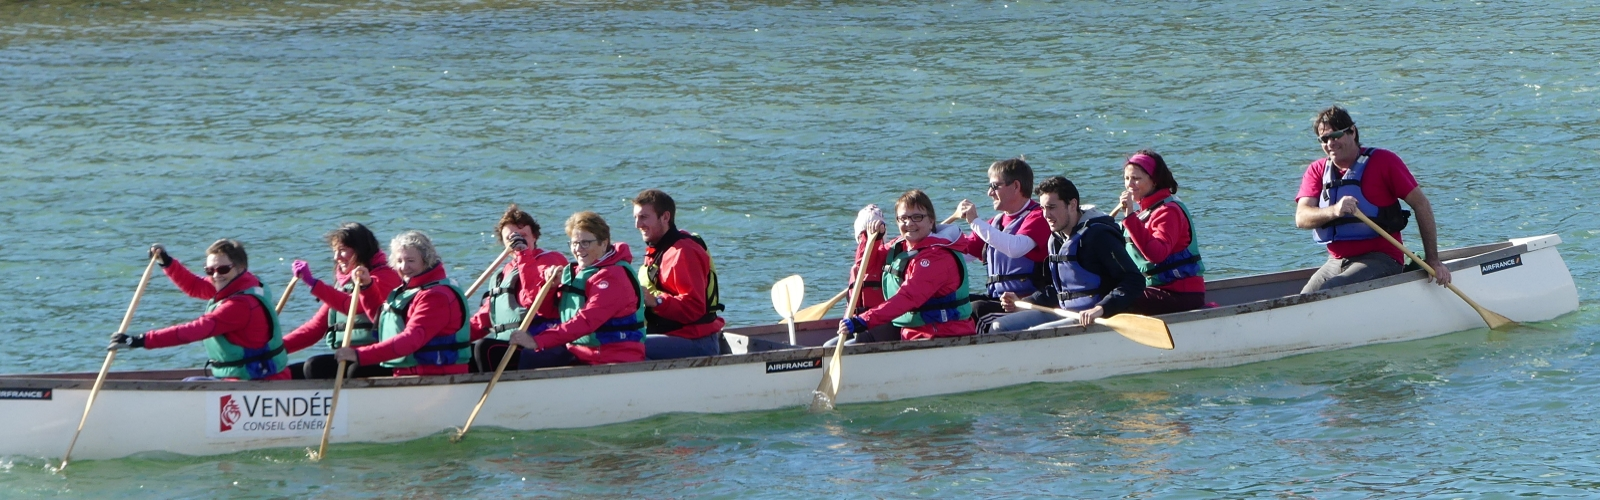 canoe 15 places sold